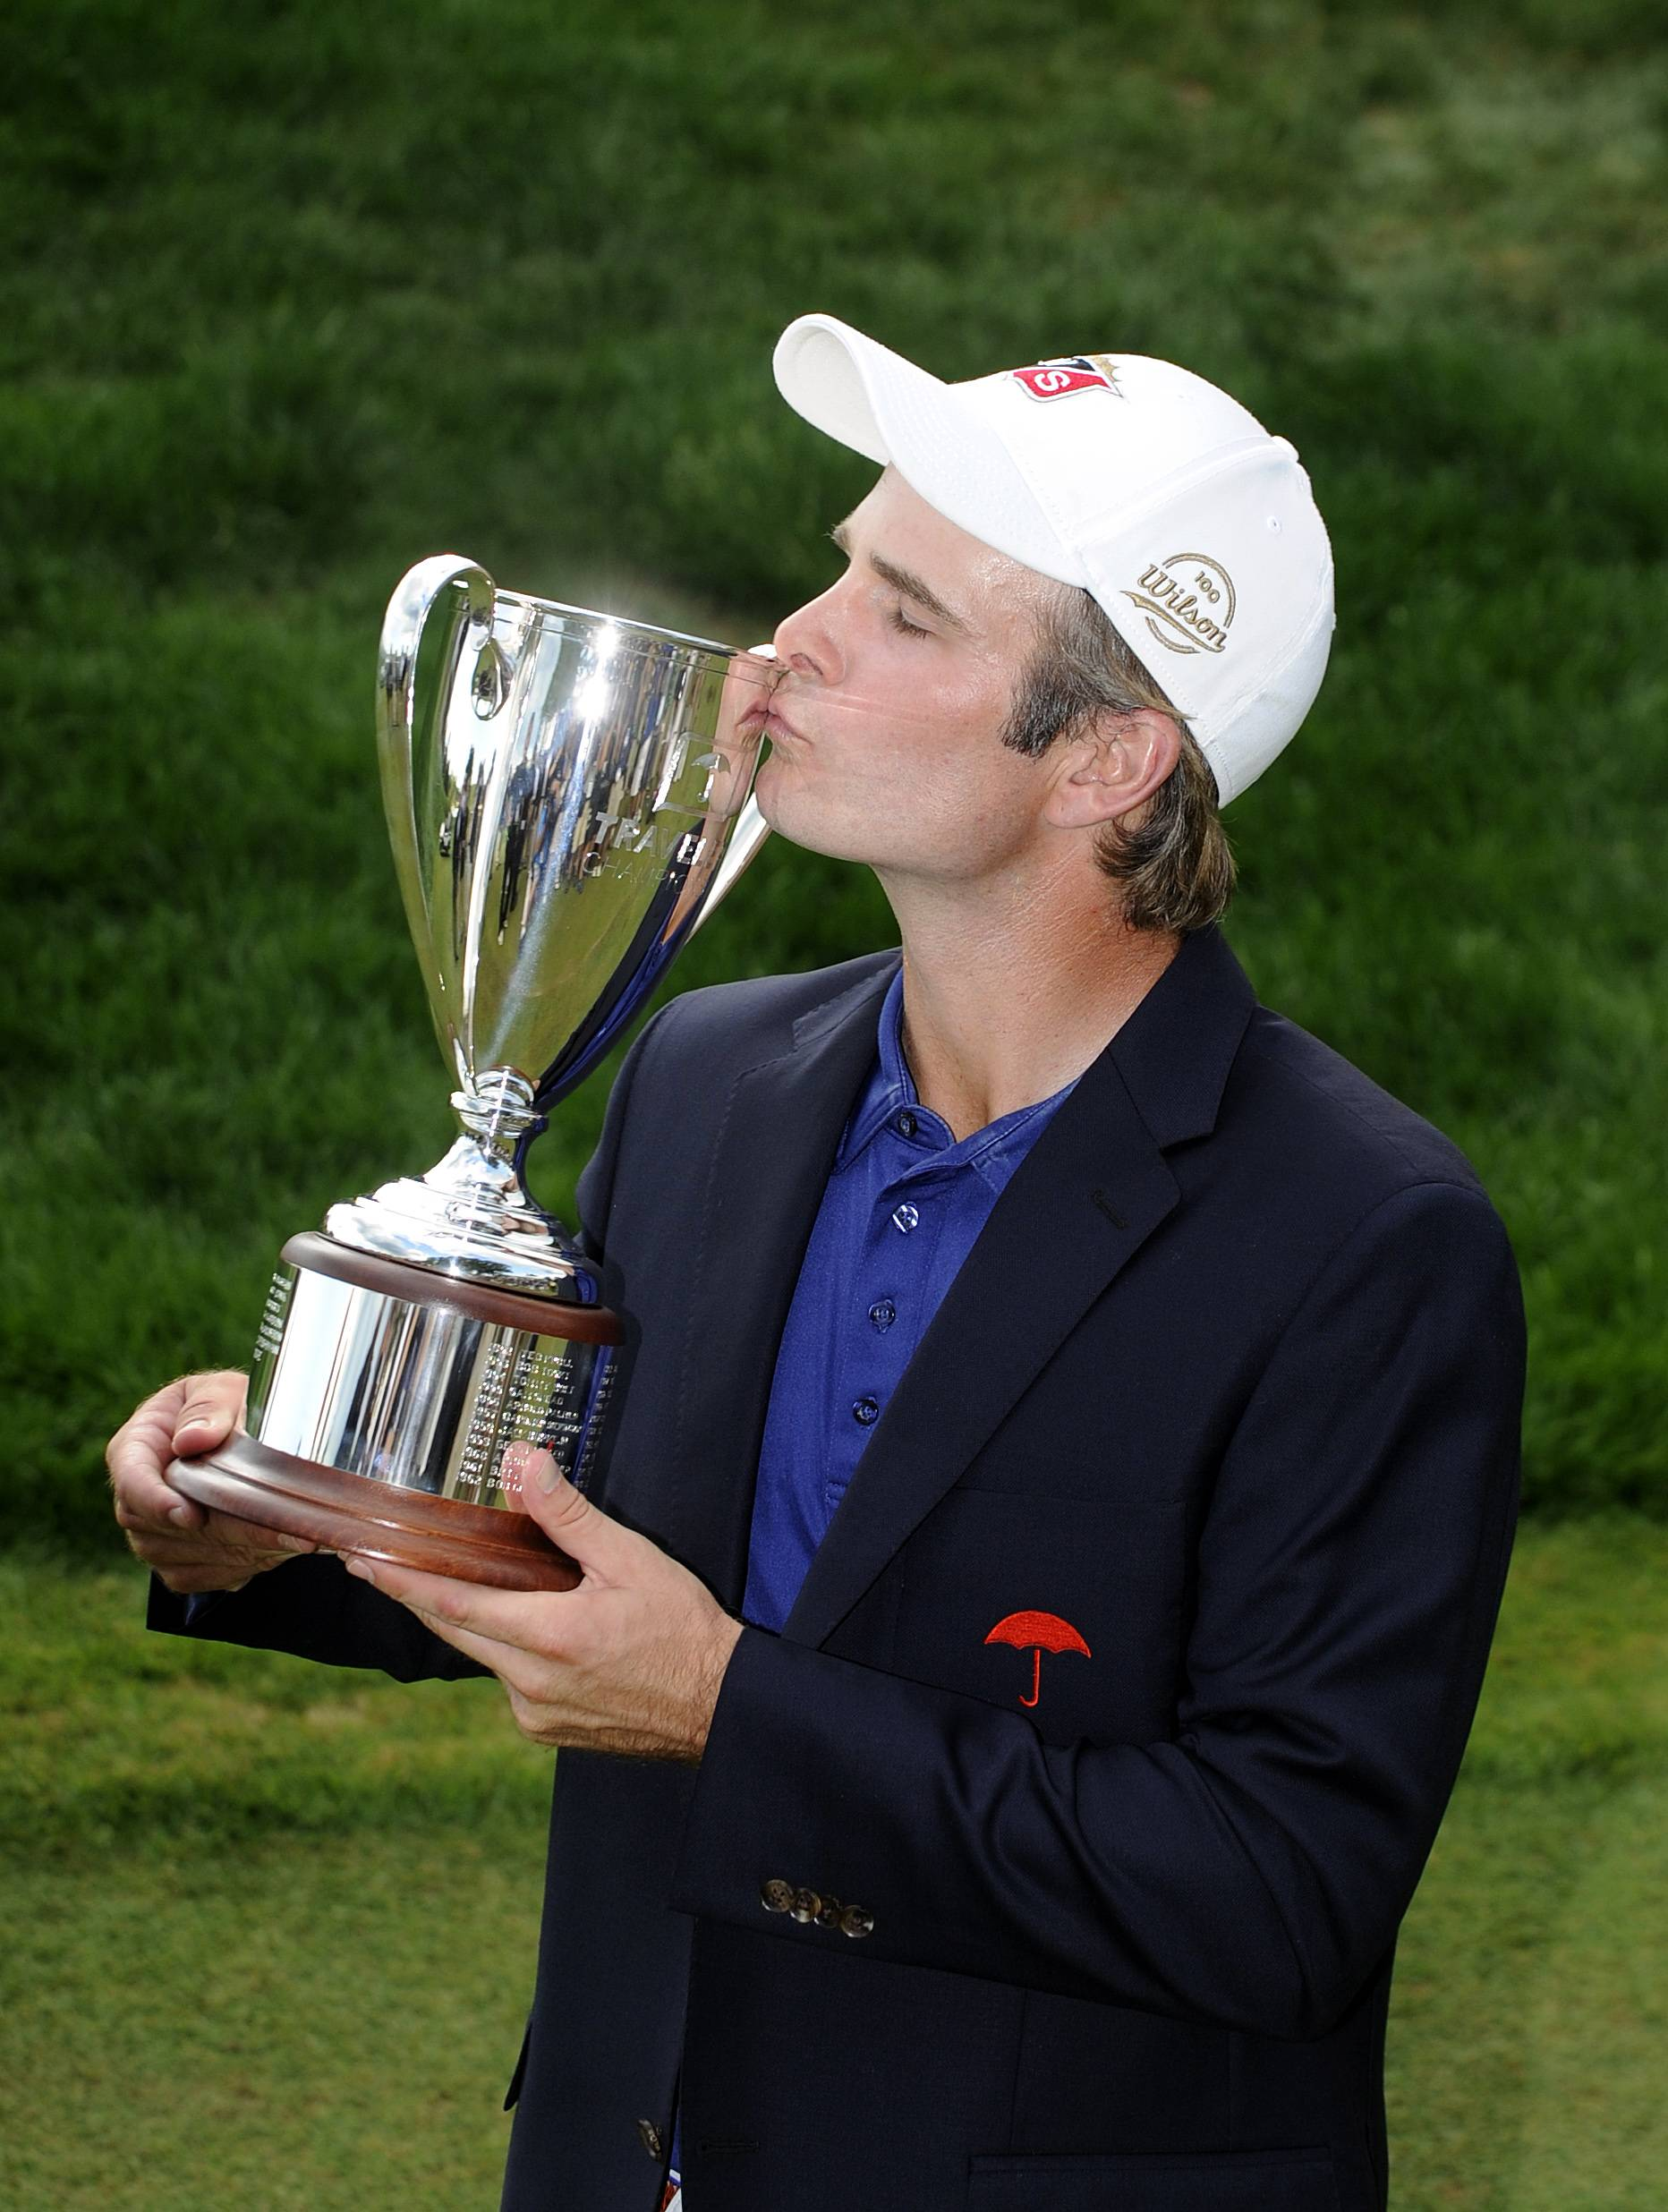 Kevin Streelman kisses the trophy Sunday after winning the Travelers Championship golf tournament in Cromwell, Conn. Streelman finished his round with seven straight birdies to win the tournament at 15-under par.